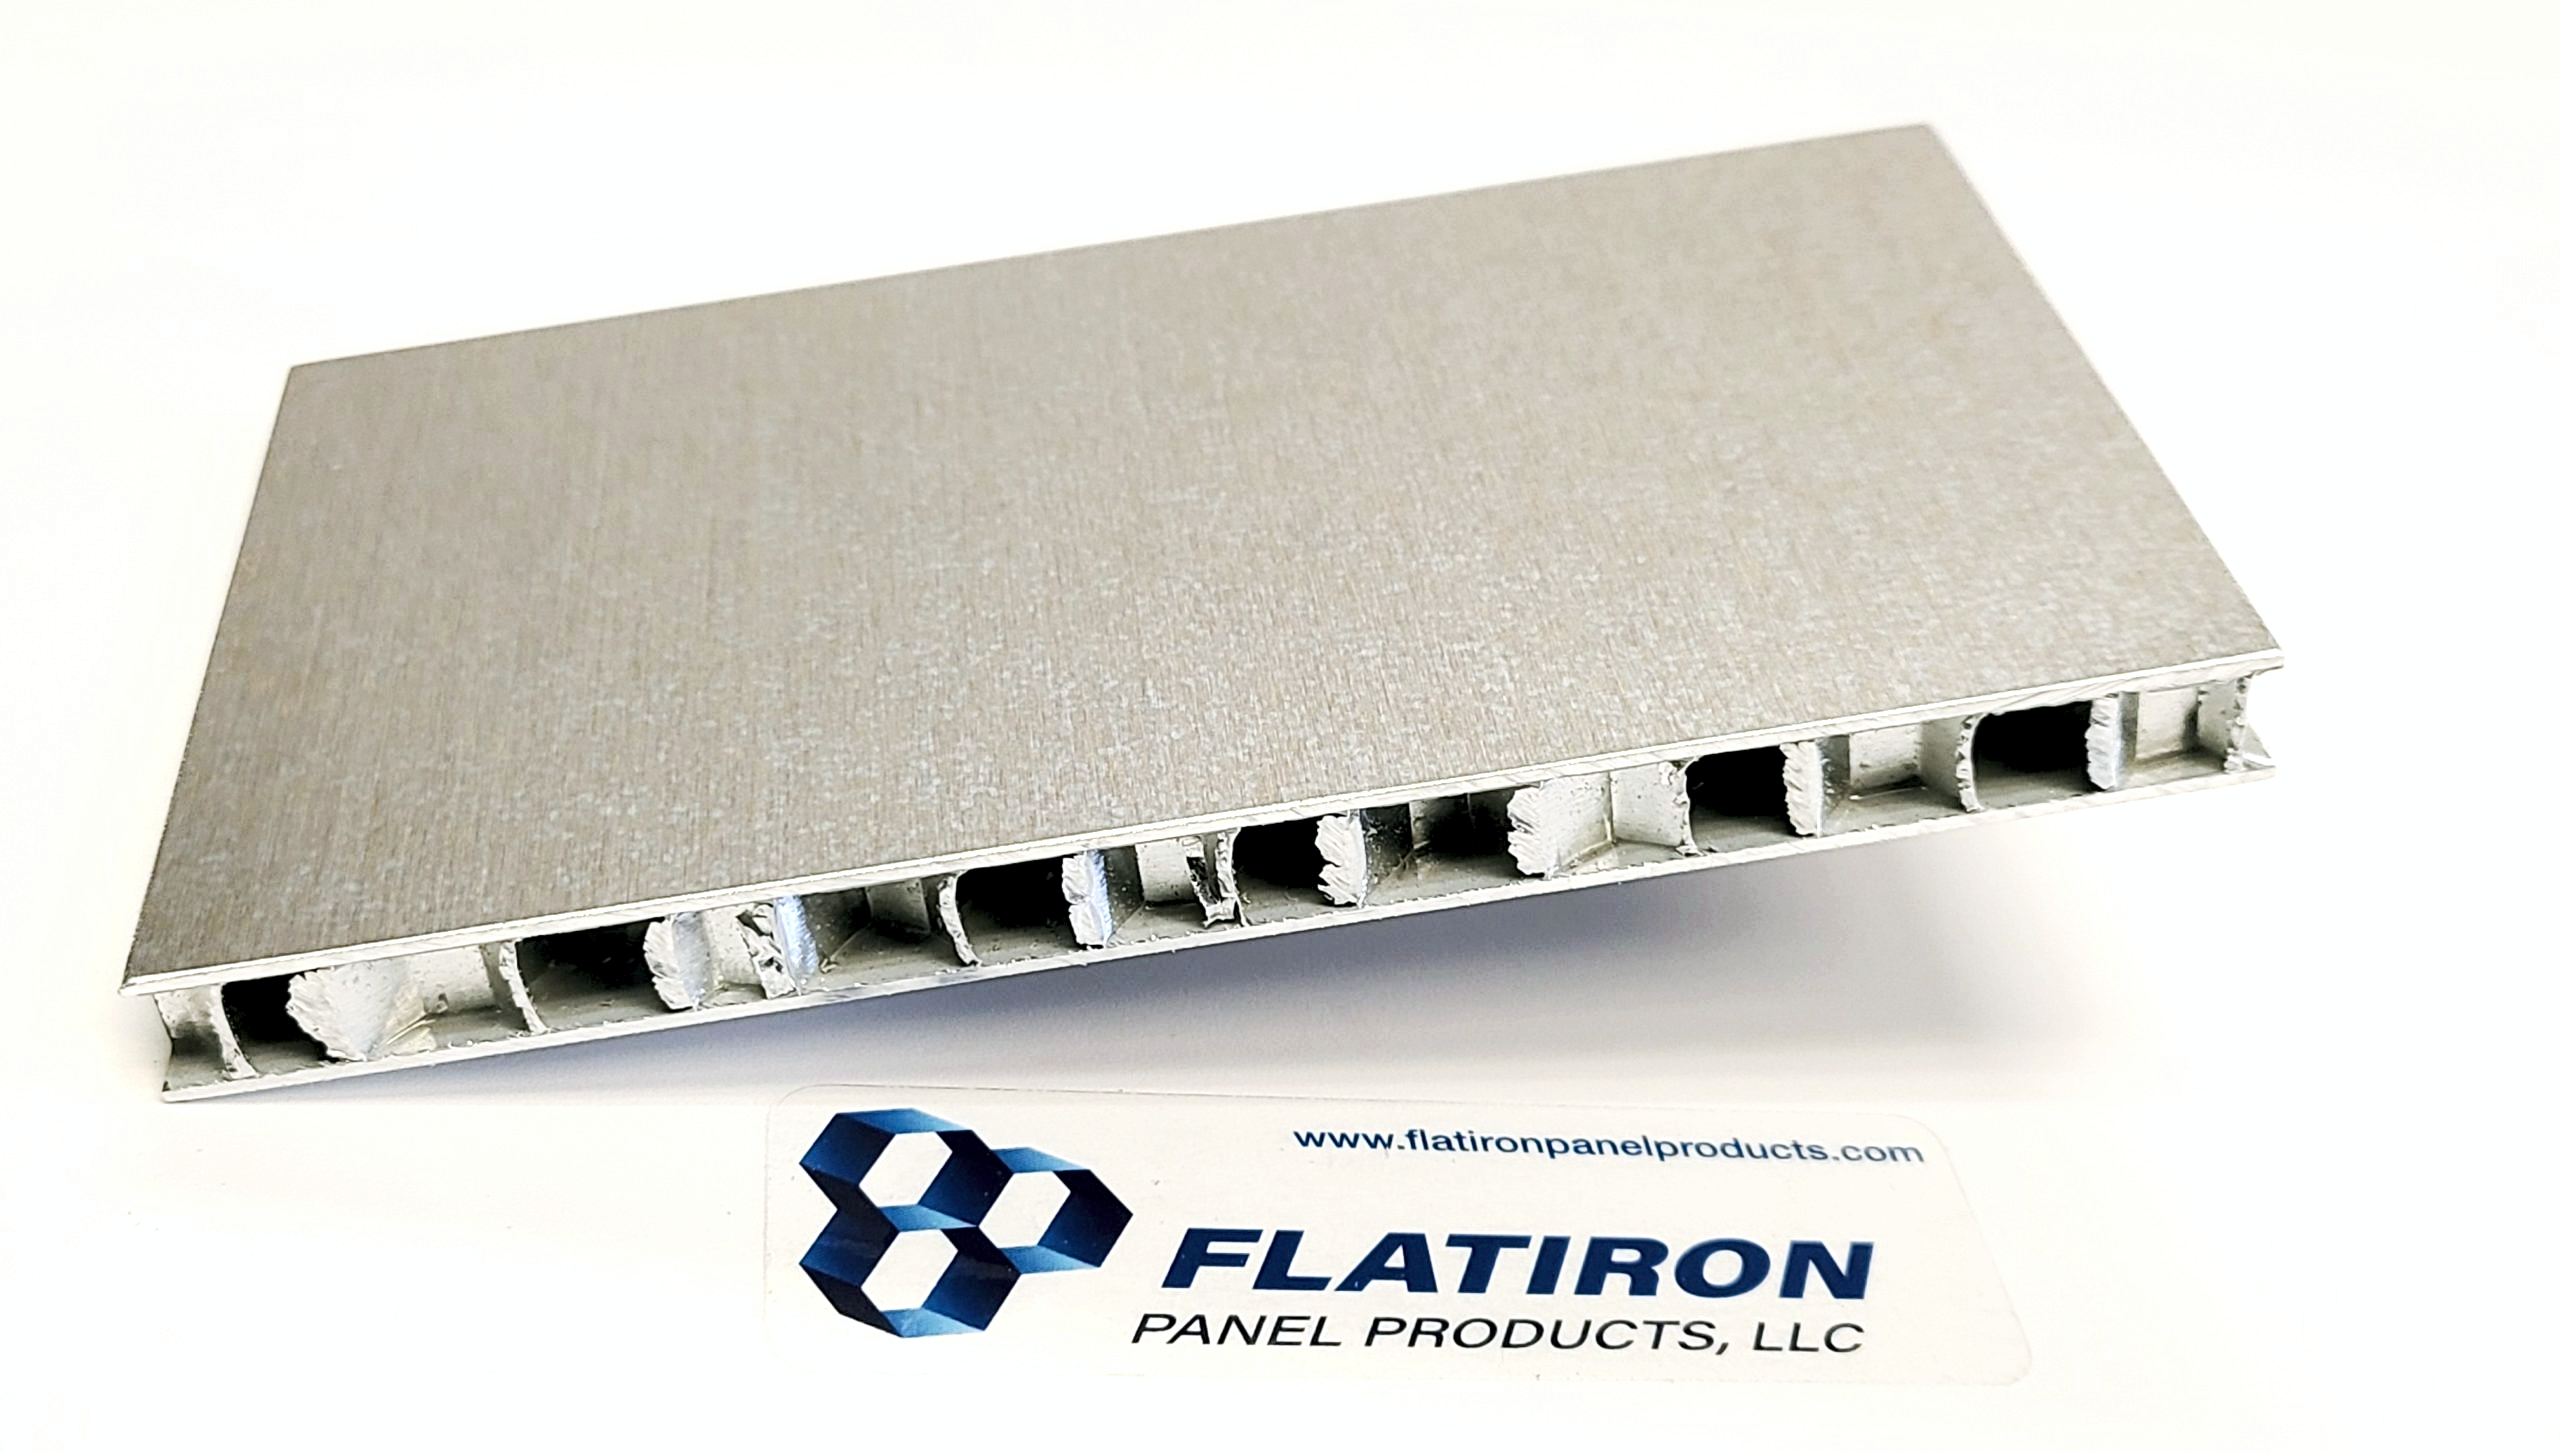 """Aluminum Honeycomb Panels - 0.125""""T x 12 Inch x 12 Inch - Mill Finish Face Sheets"""